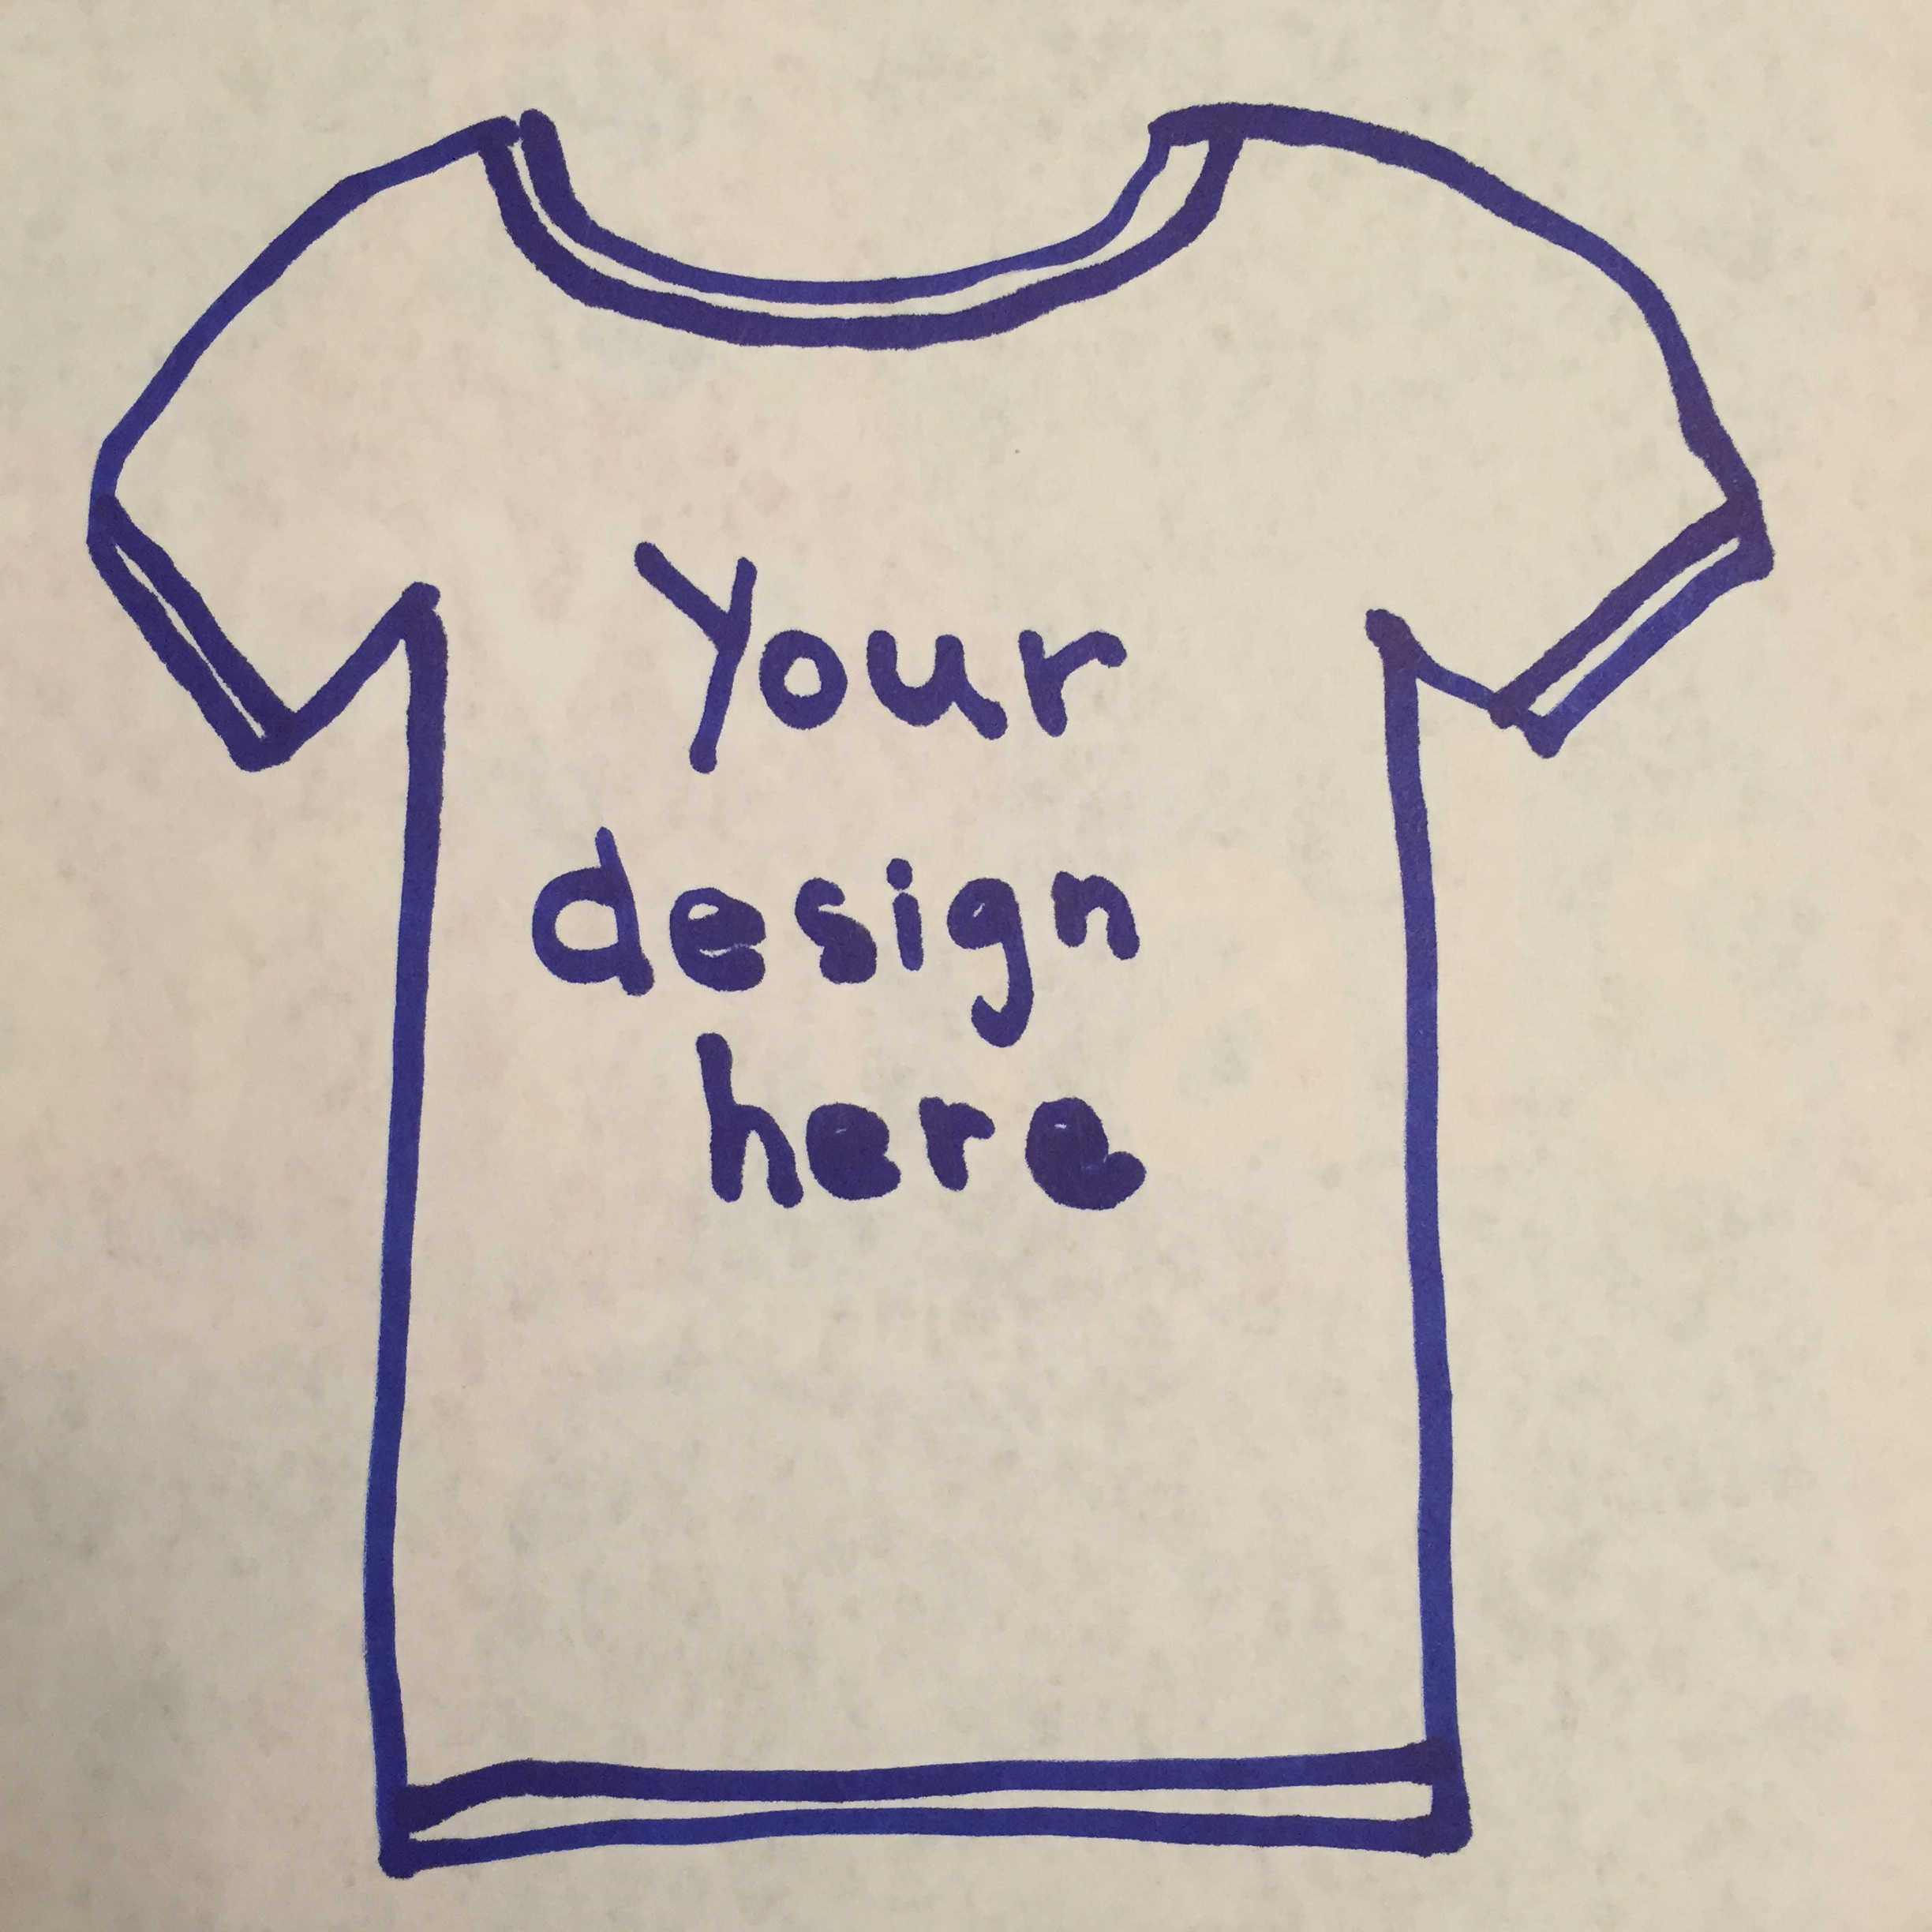 Your design here template